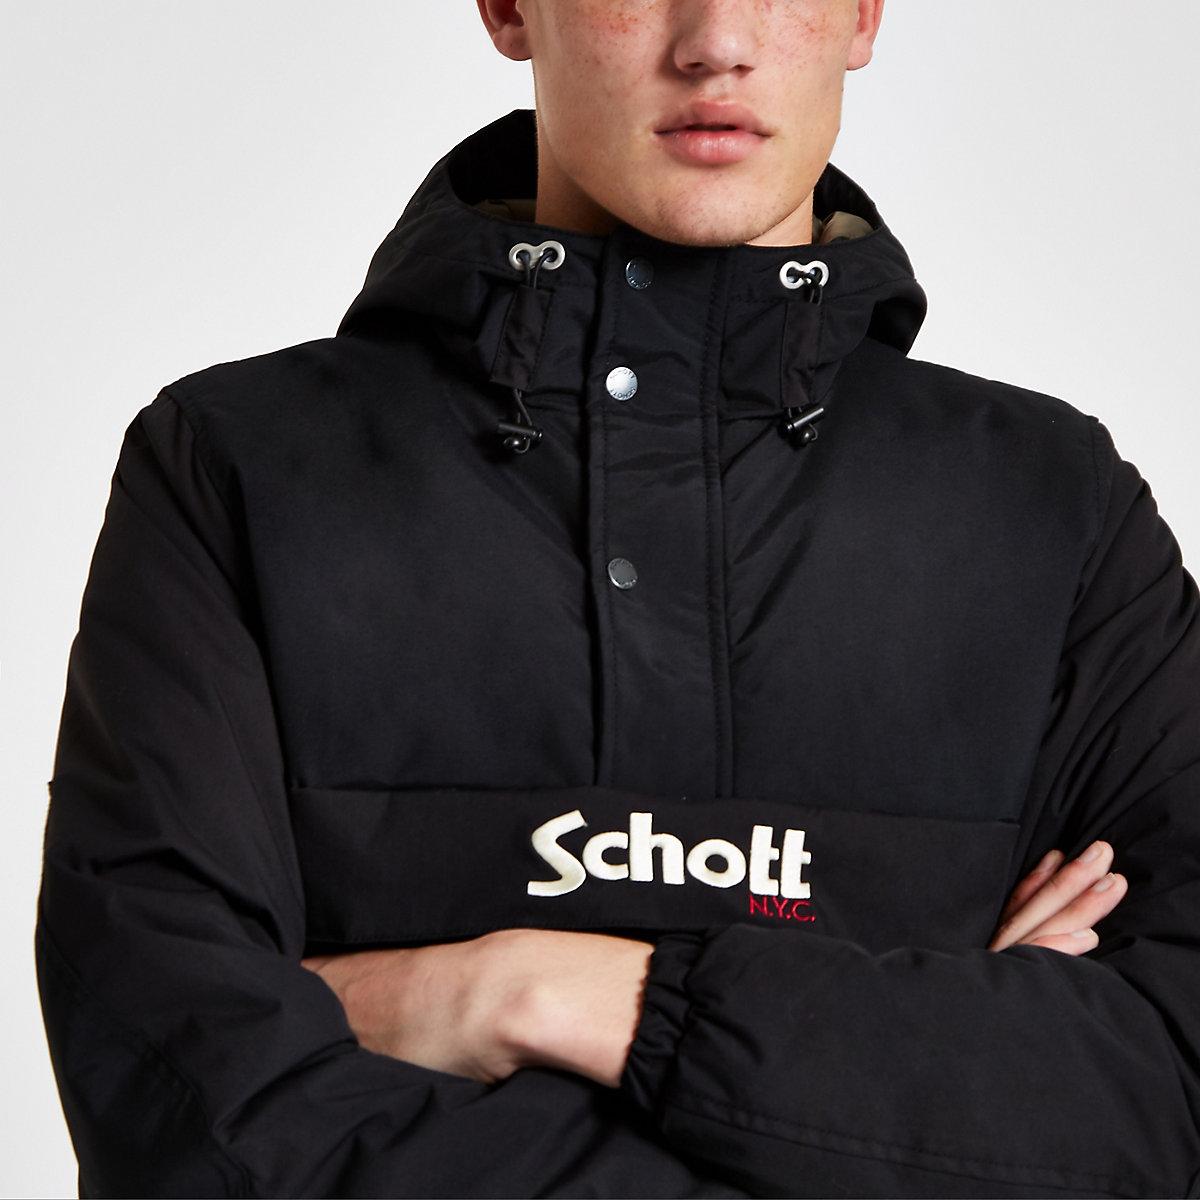 Schott black anorak jacket